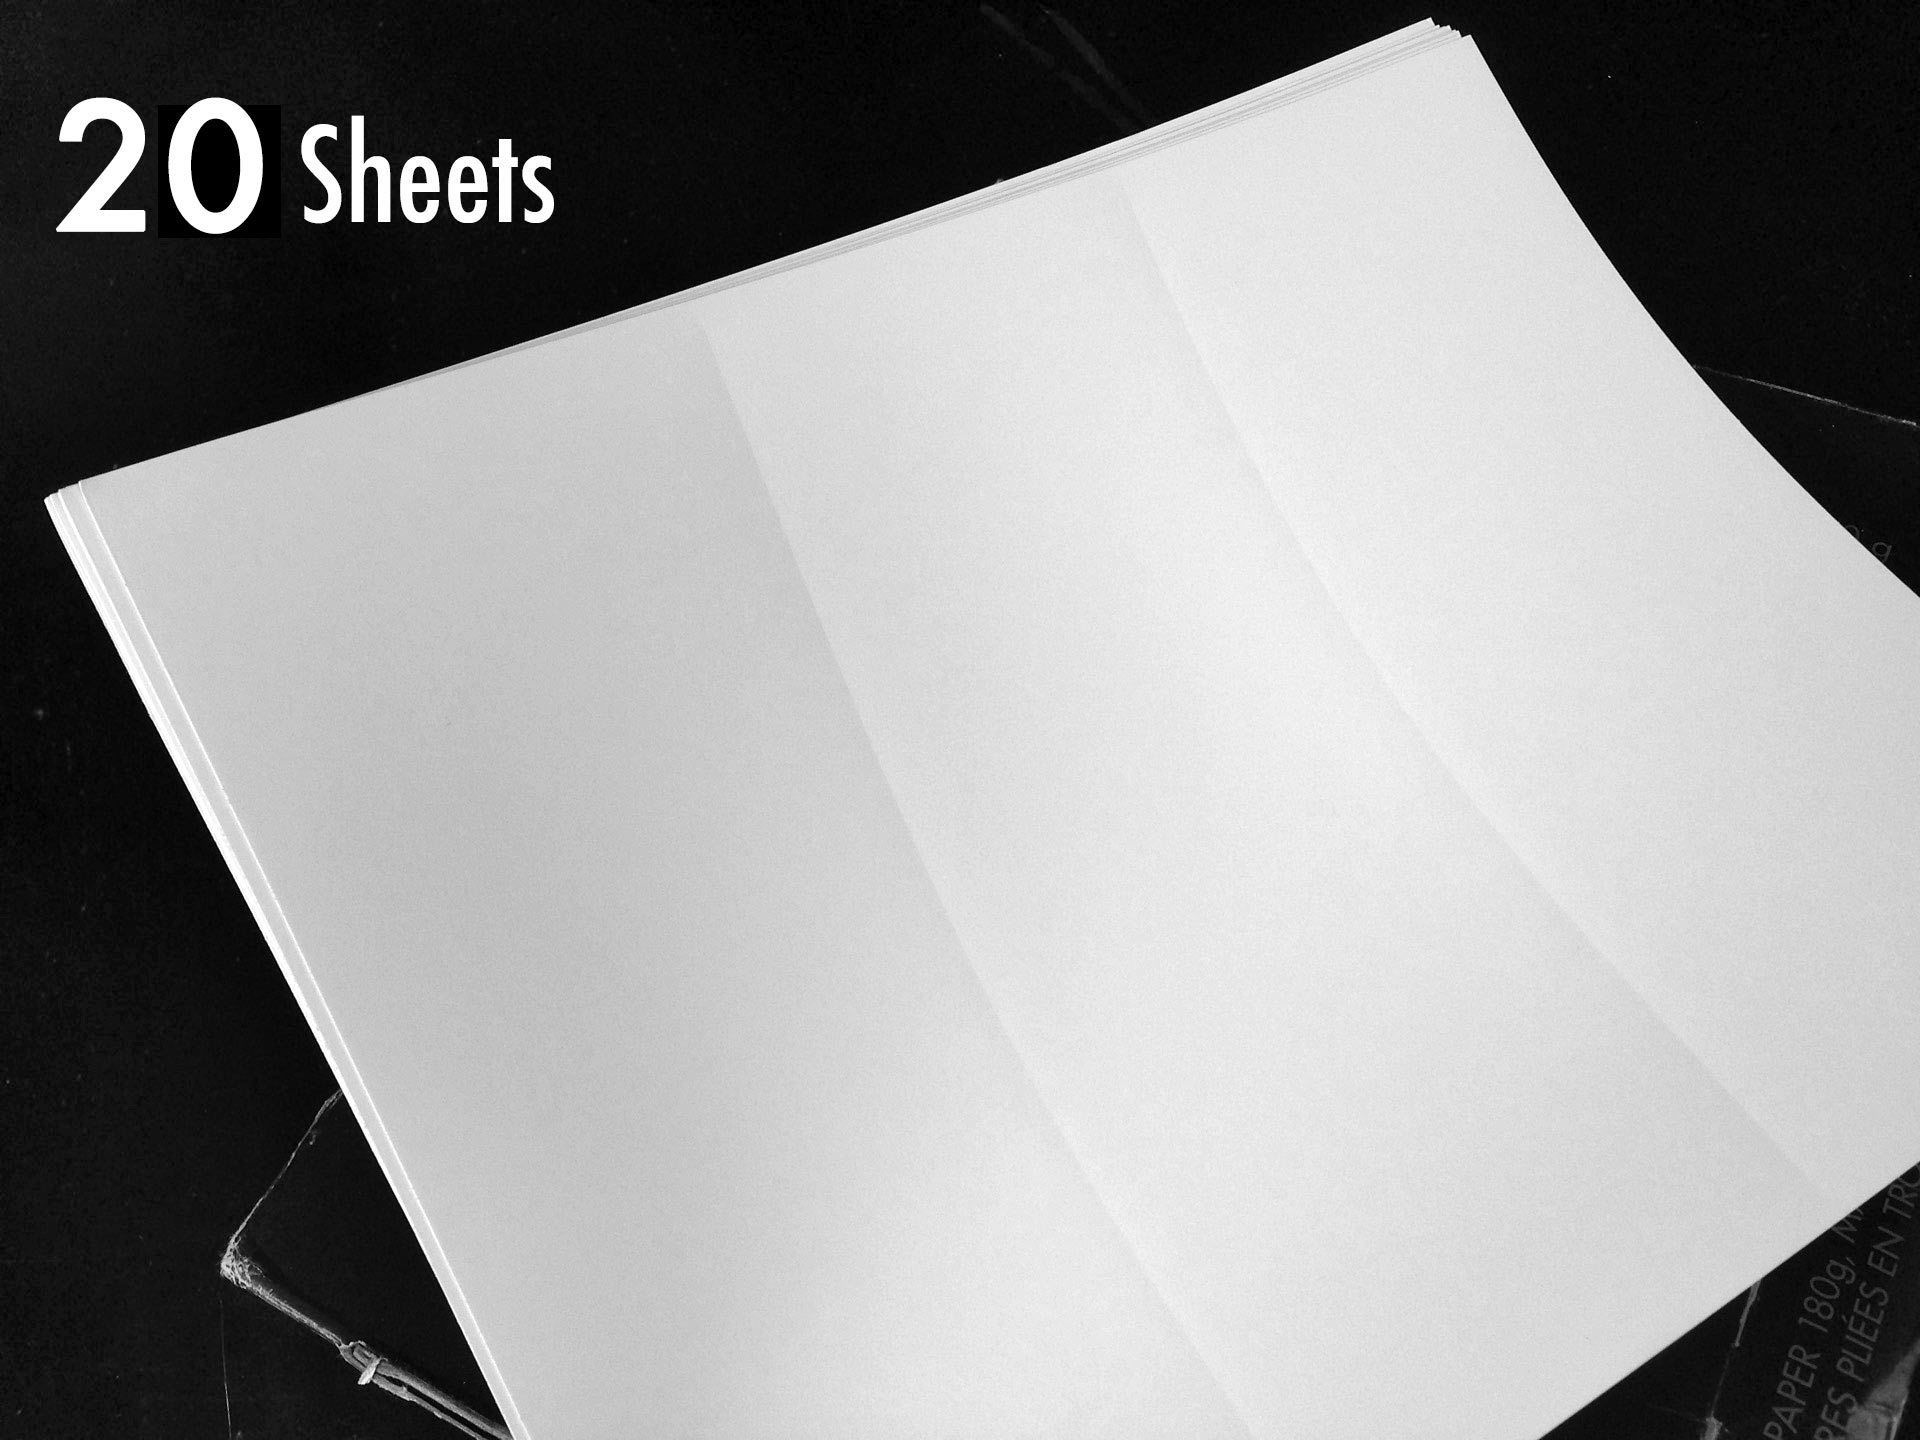 hp tri fold brochure template - 20 sheets hp tri fold matte brochure paper for inkjet